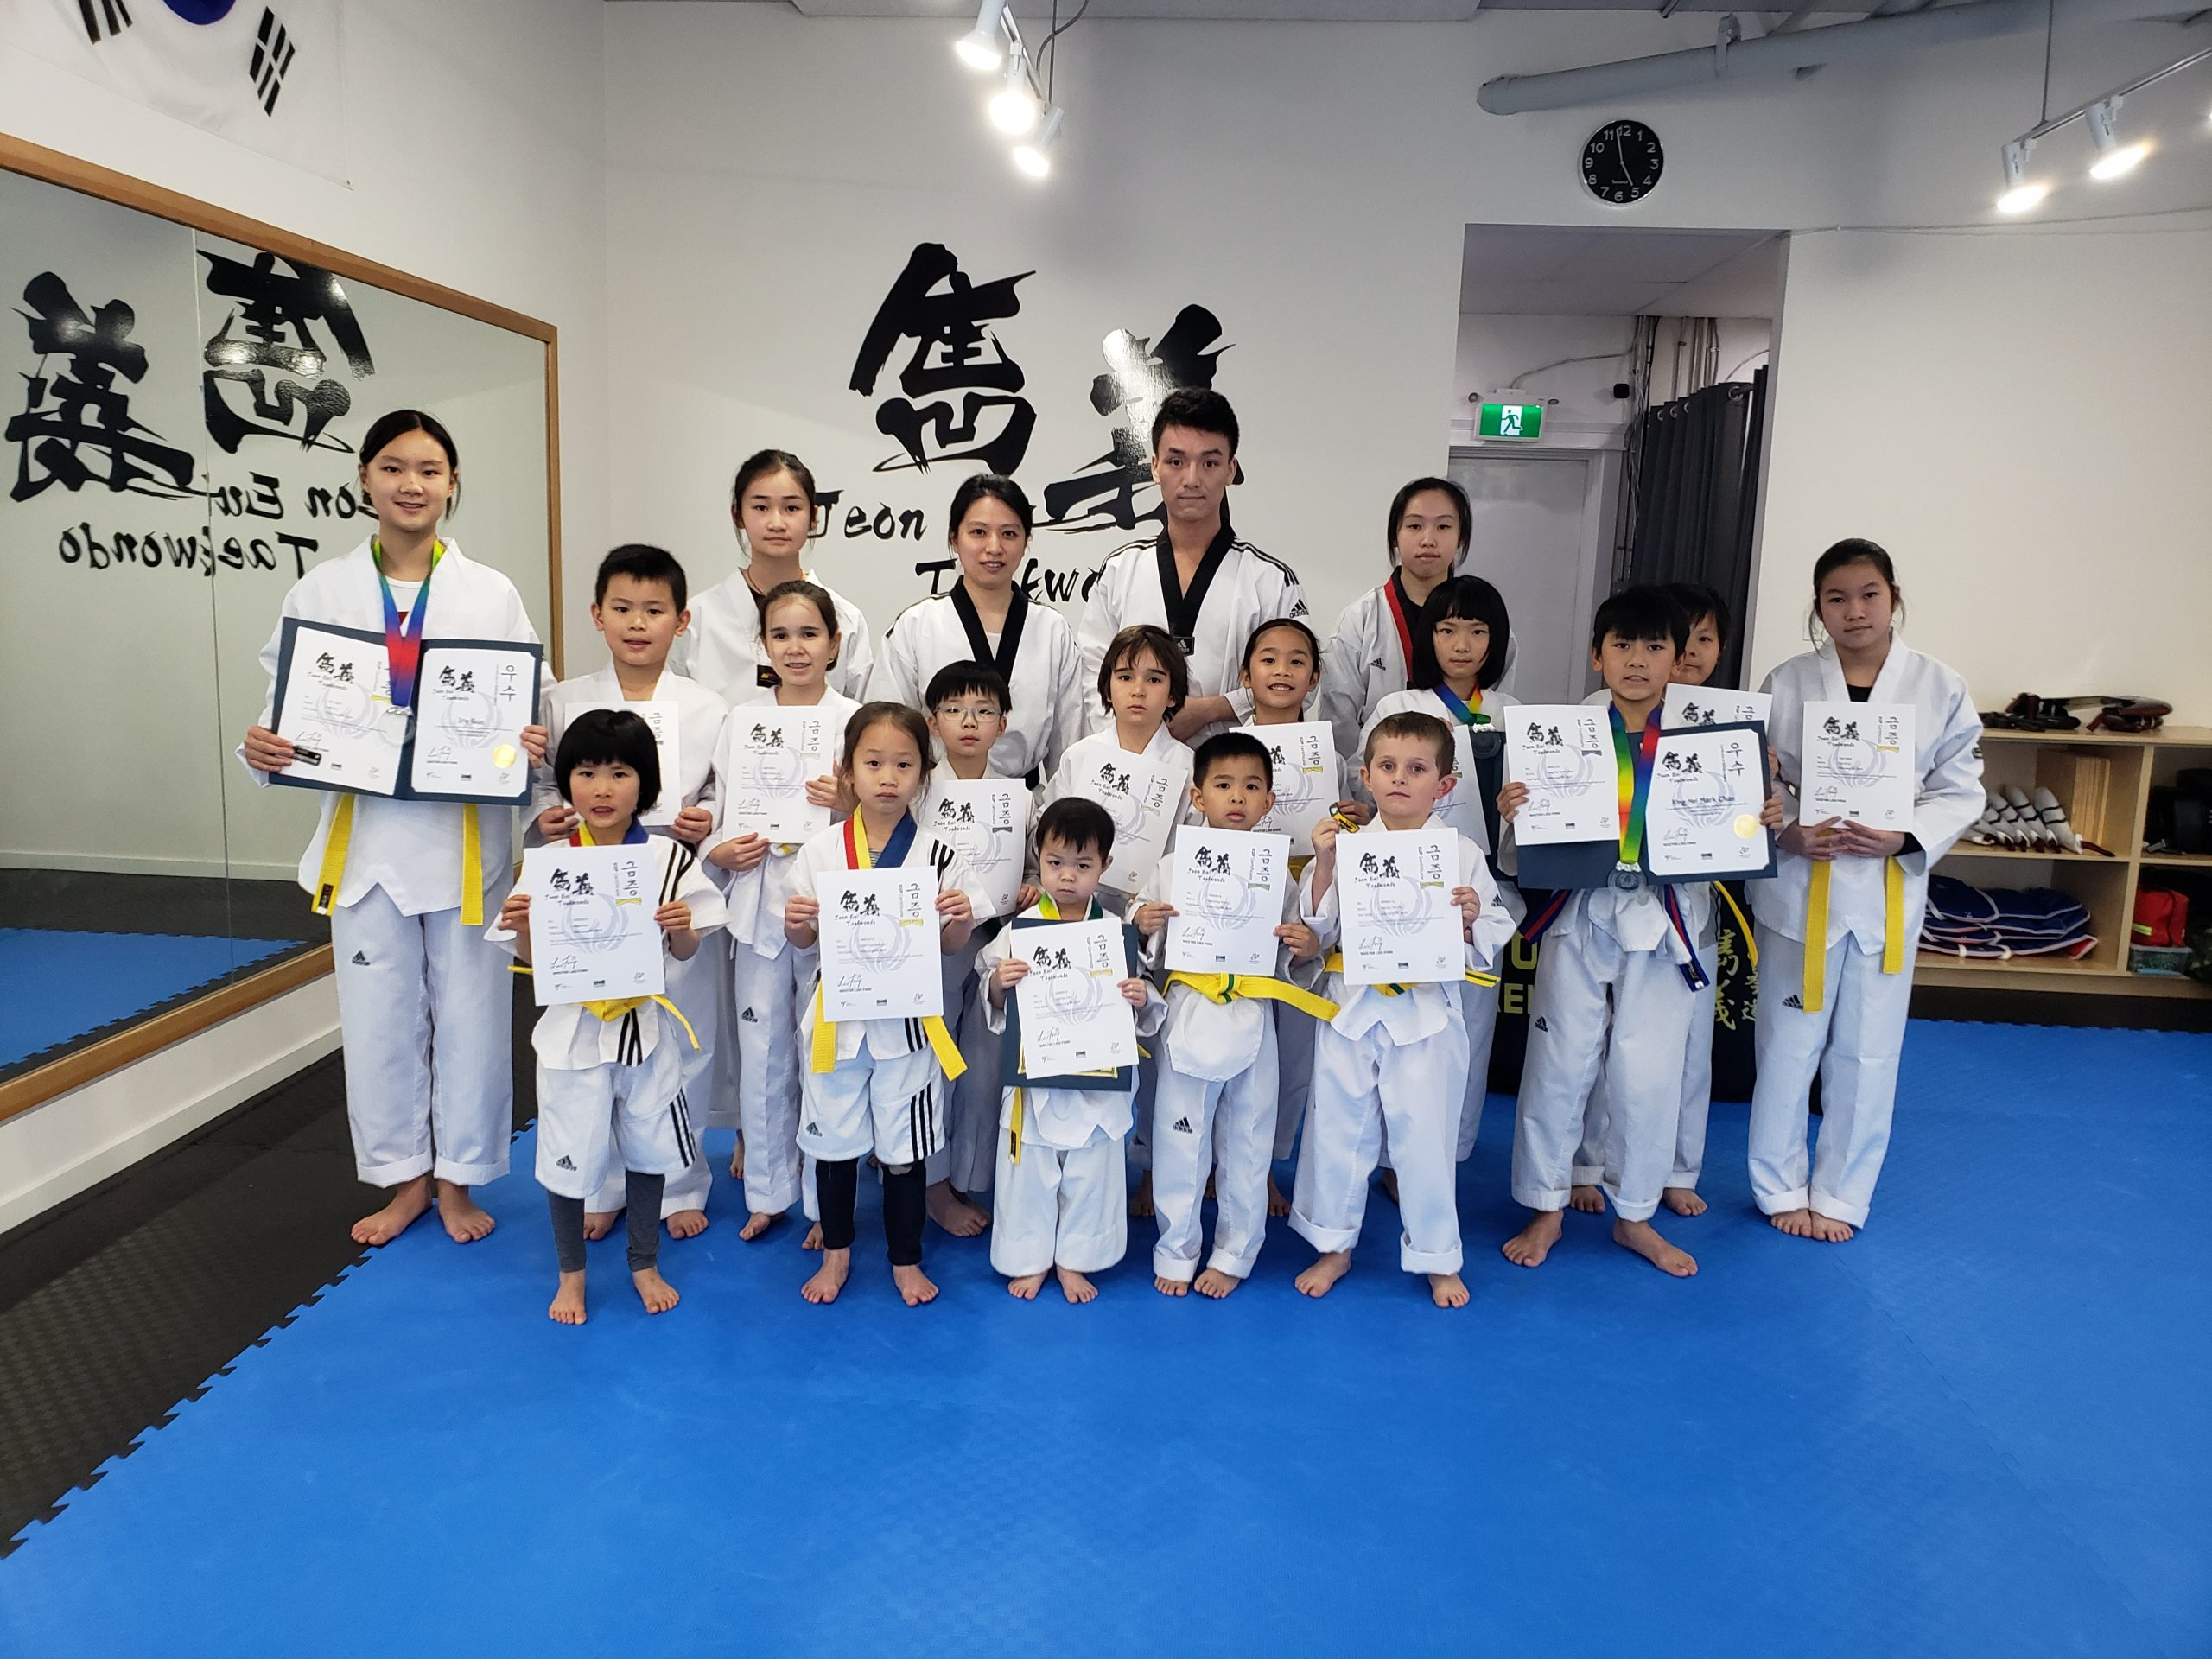 Promotion Test in February 2020